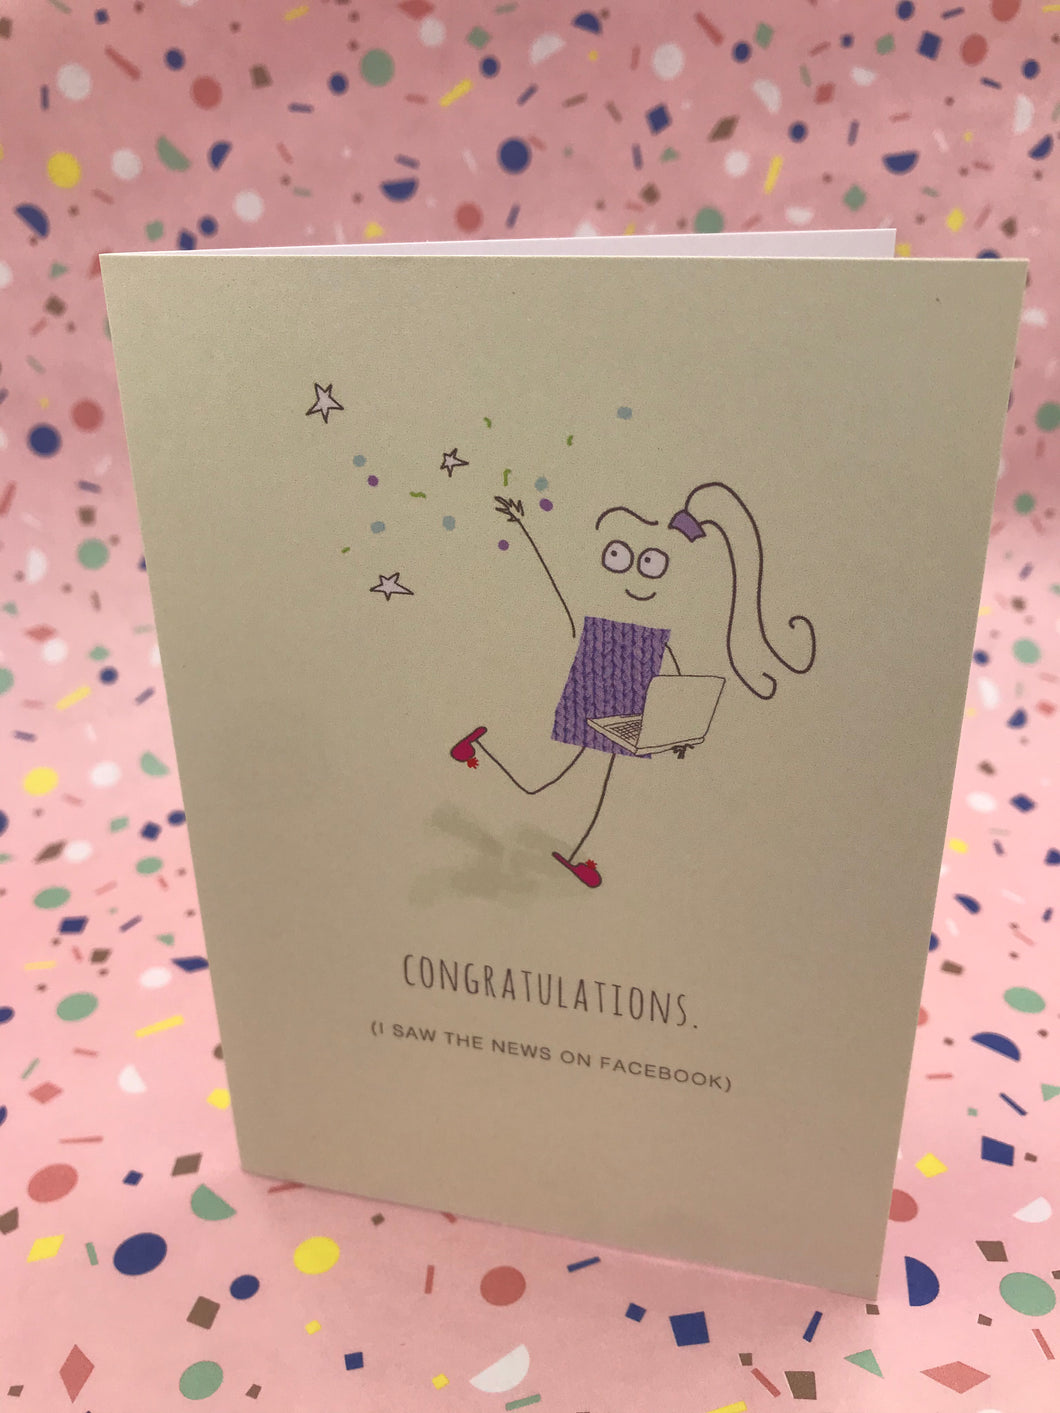 An illustration of a girl wearing a knitted jumper saying congratulations